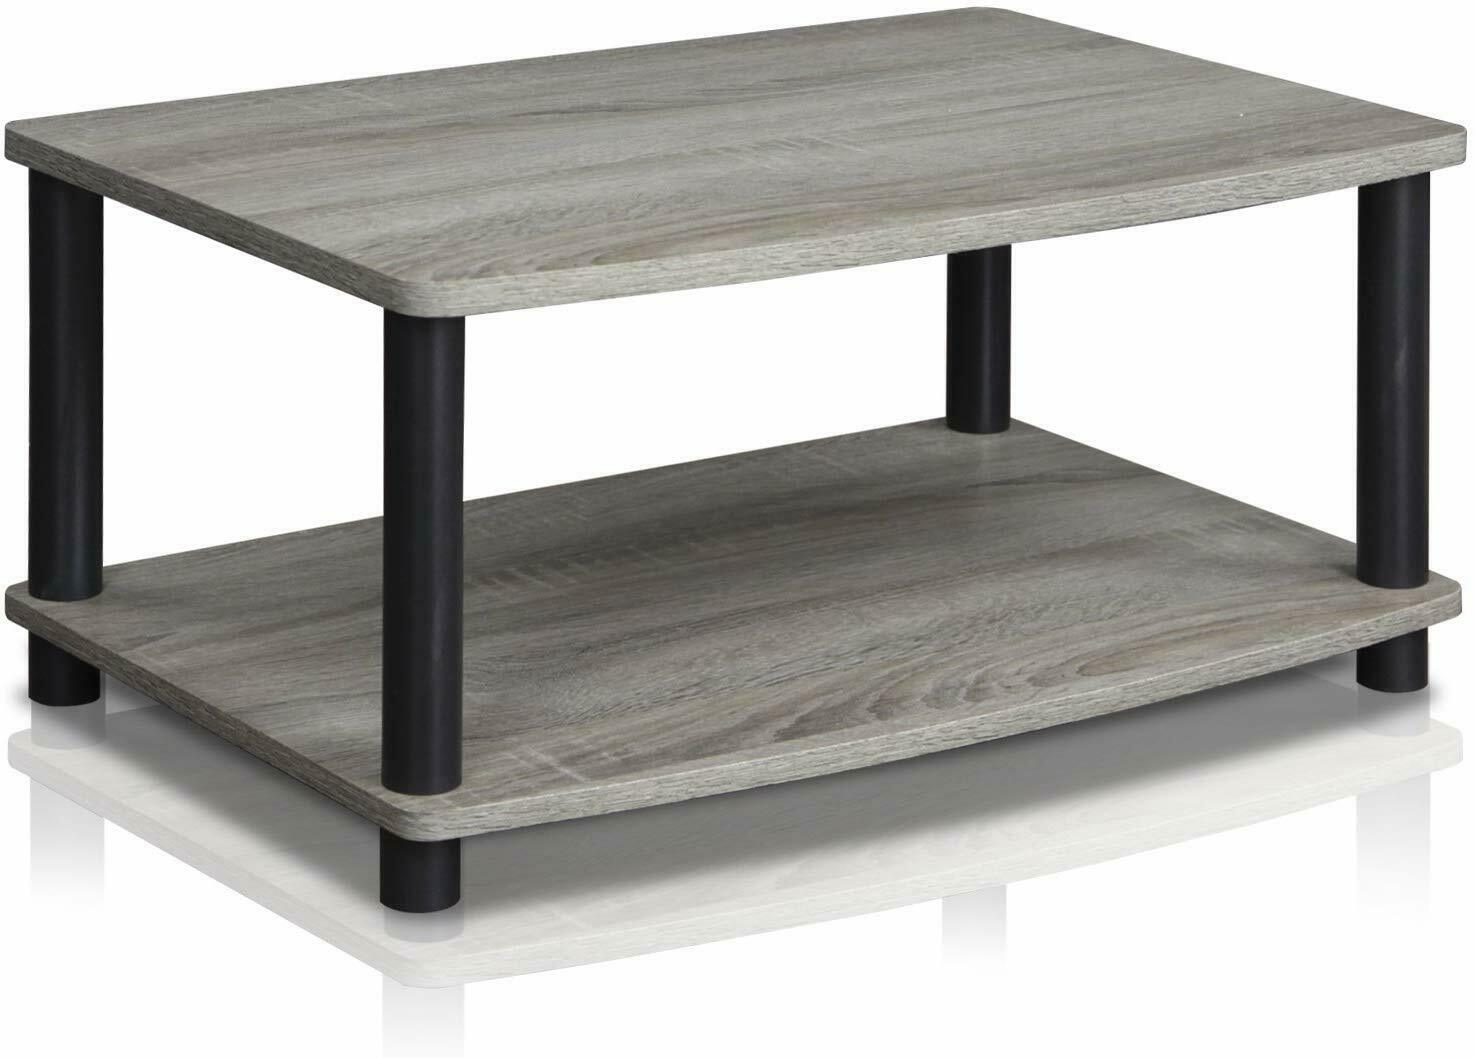 Modern Rustic Tv Stand Coffee Table Small Wood End Storage Living